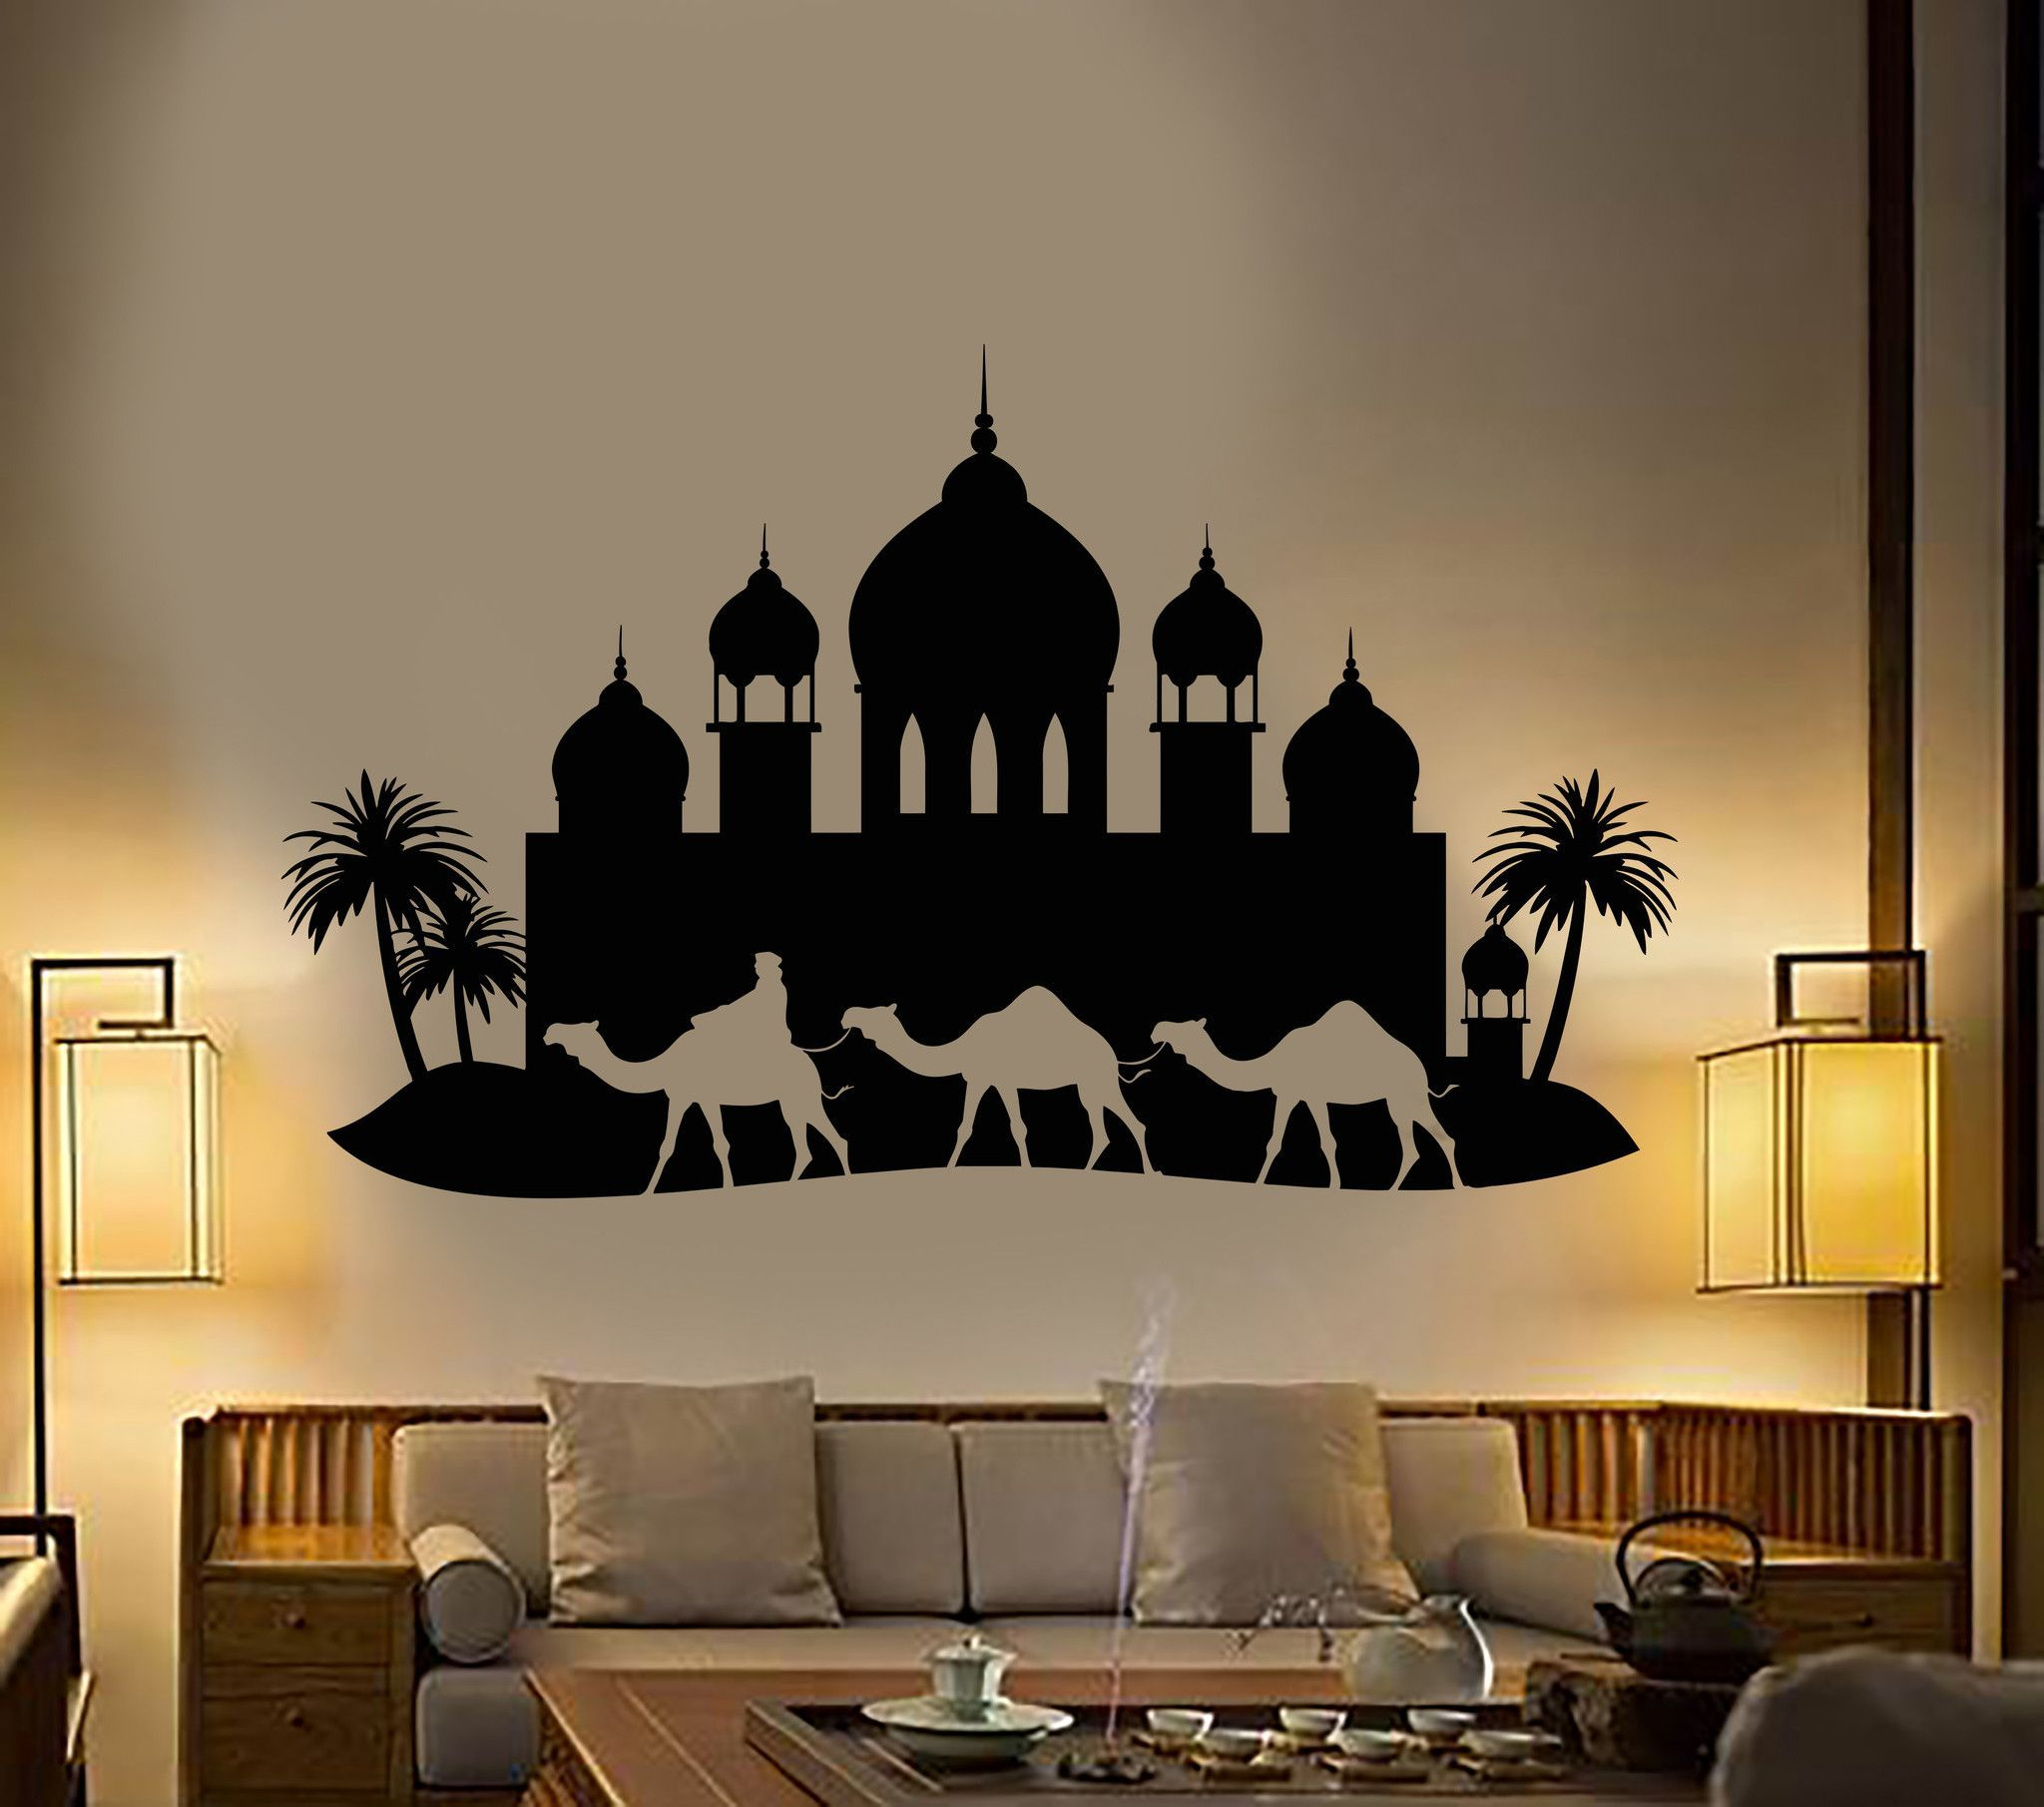 Vinyl Wall Decal Arabian Palace Palm Trees Bedouin Arabic Style Stickers Unique Gift 1138ig Arabic Decor Arabian Decor Vinyl Wall